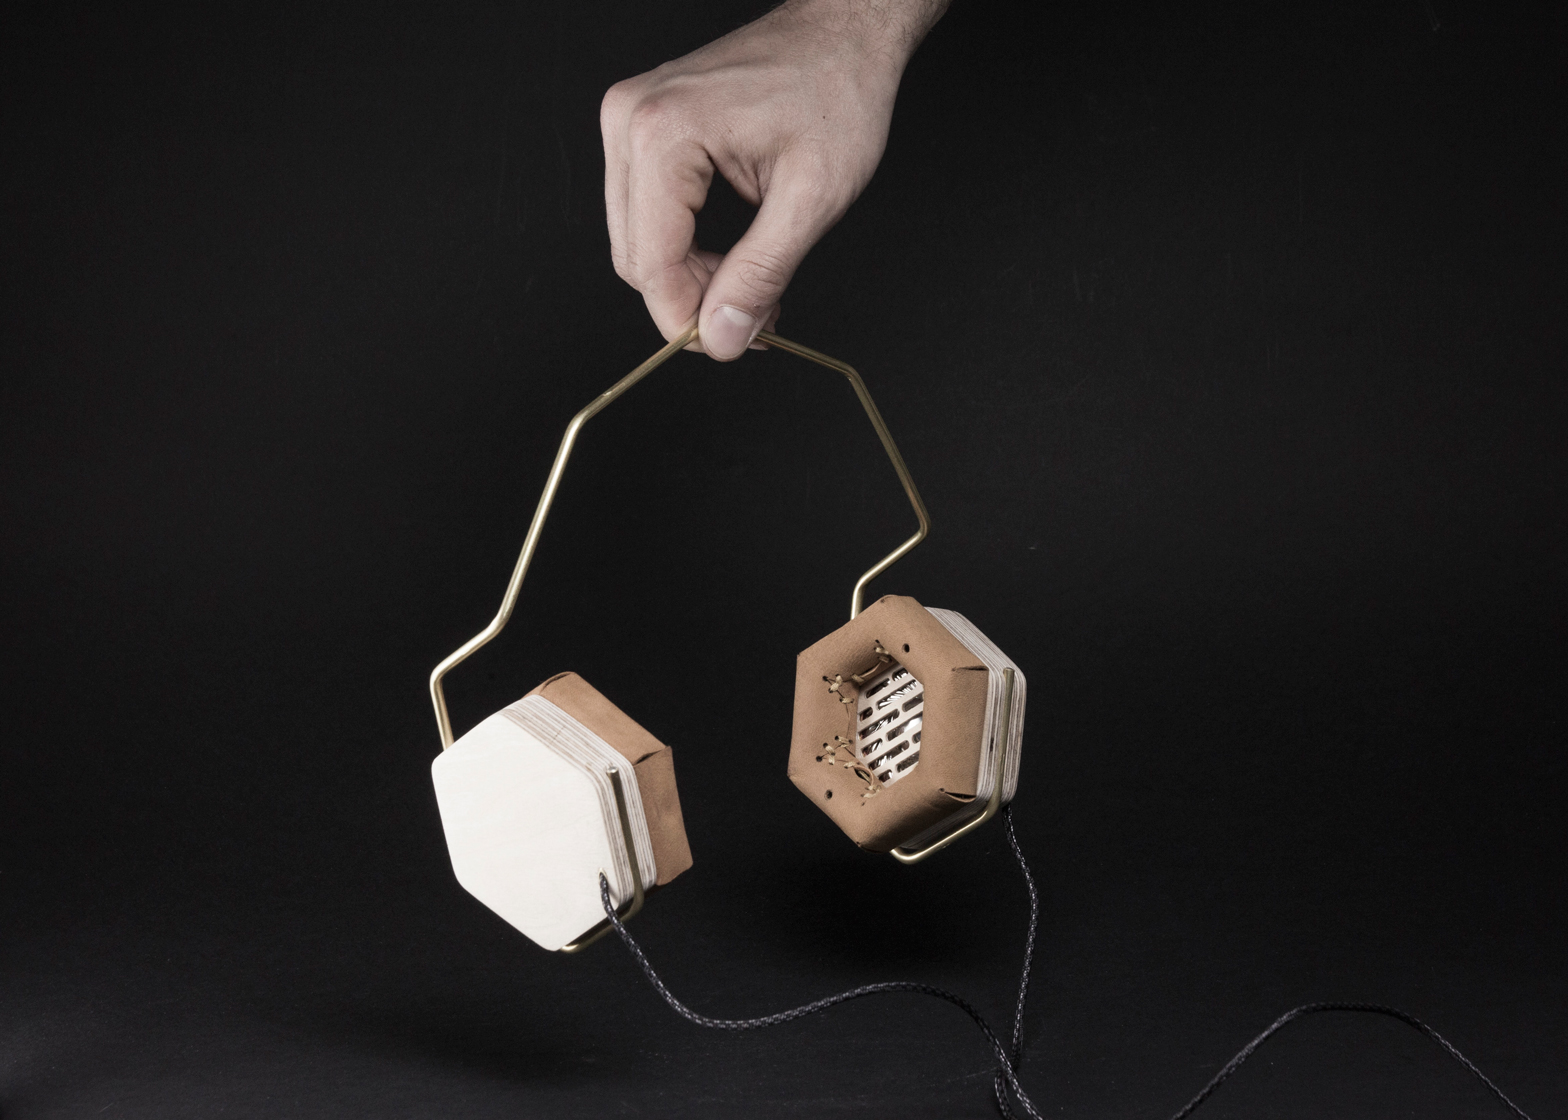 Wooden headphones by Prototip studio and Acoustic Density